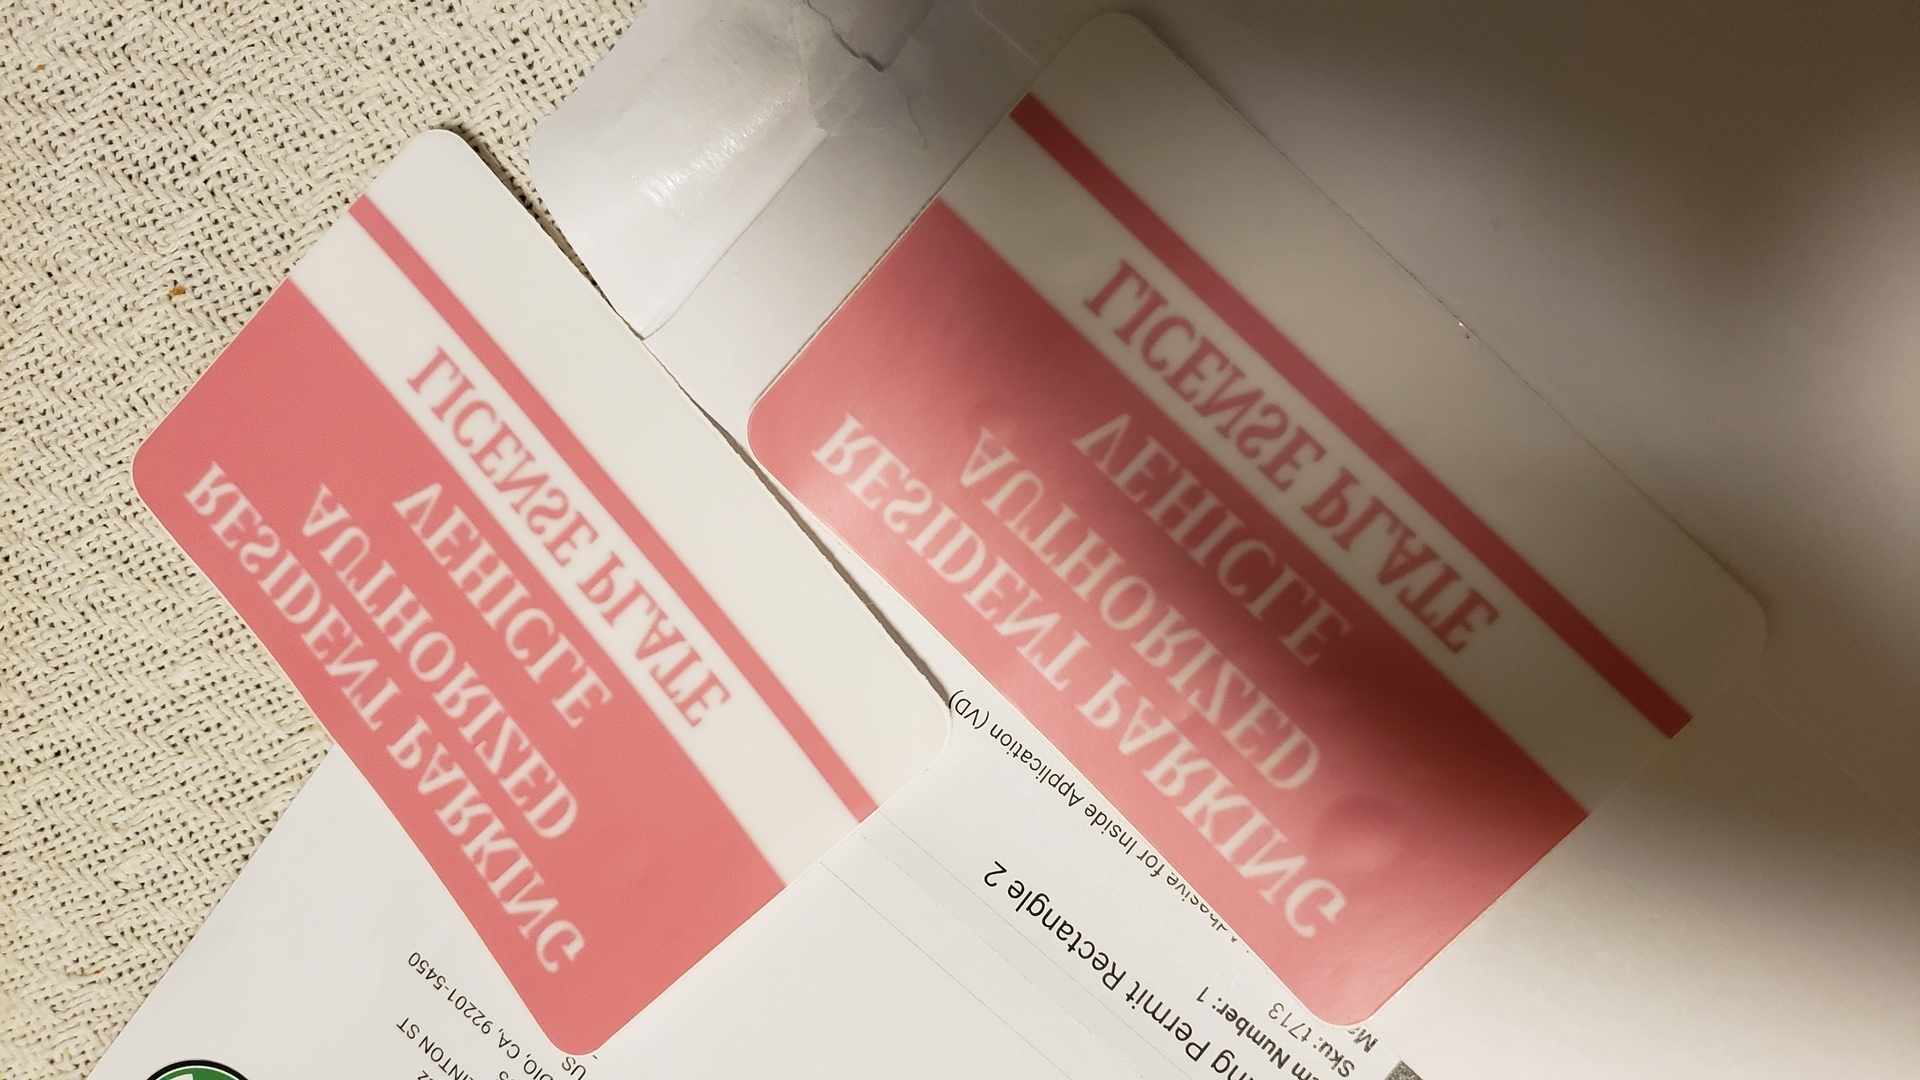 Amelia's photograph of their Parking Permit Rectangle 2